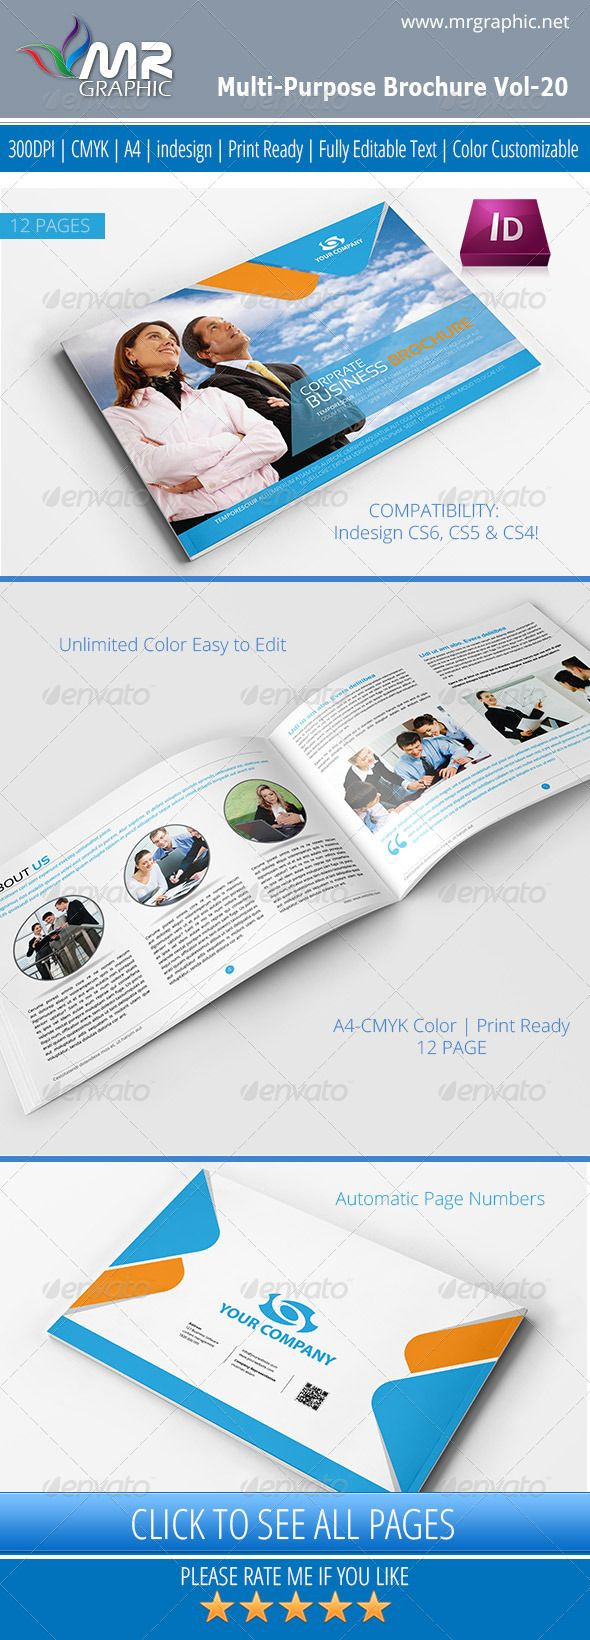 Graphicriver Book Cover Template Vol : Best images about print templates on pinterest fonts